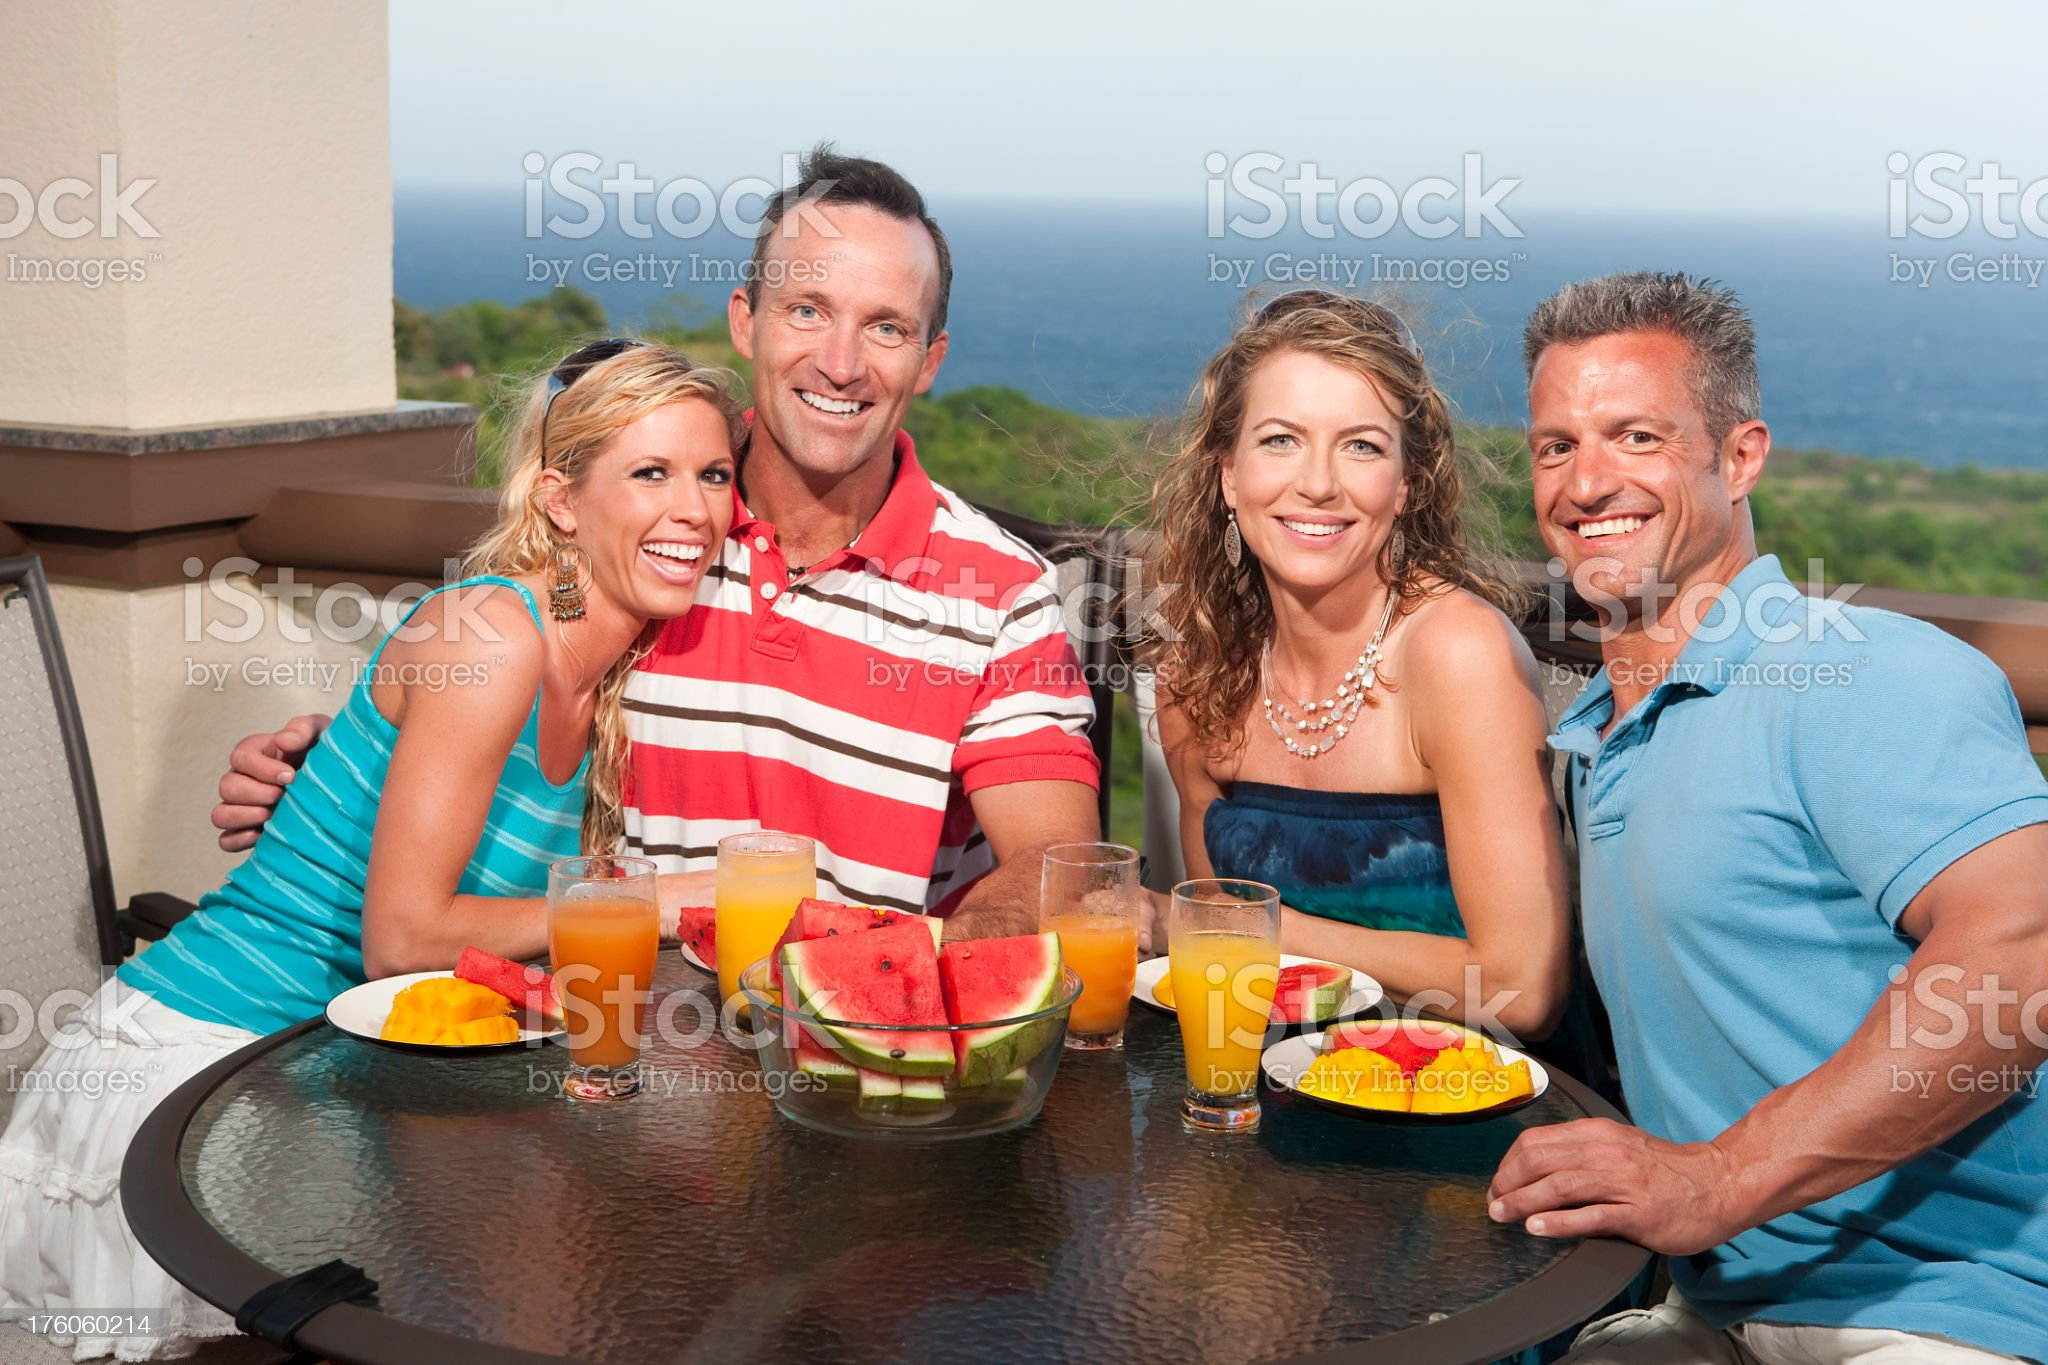 Vacation Lifestyles-Friends Eating on Balcony royalty-free stock photo